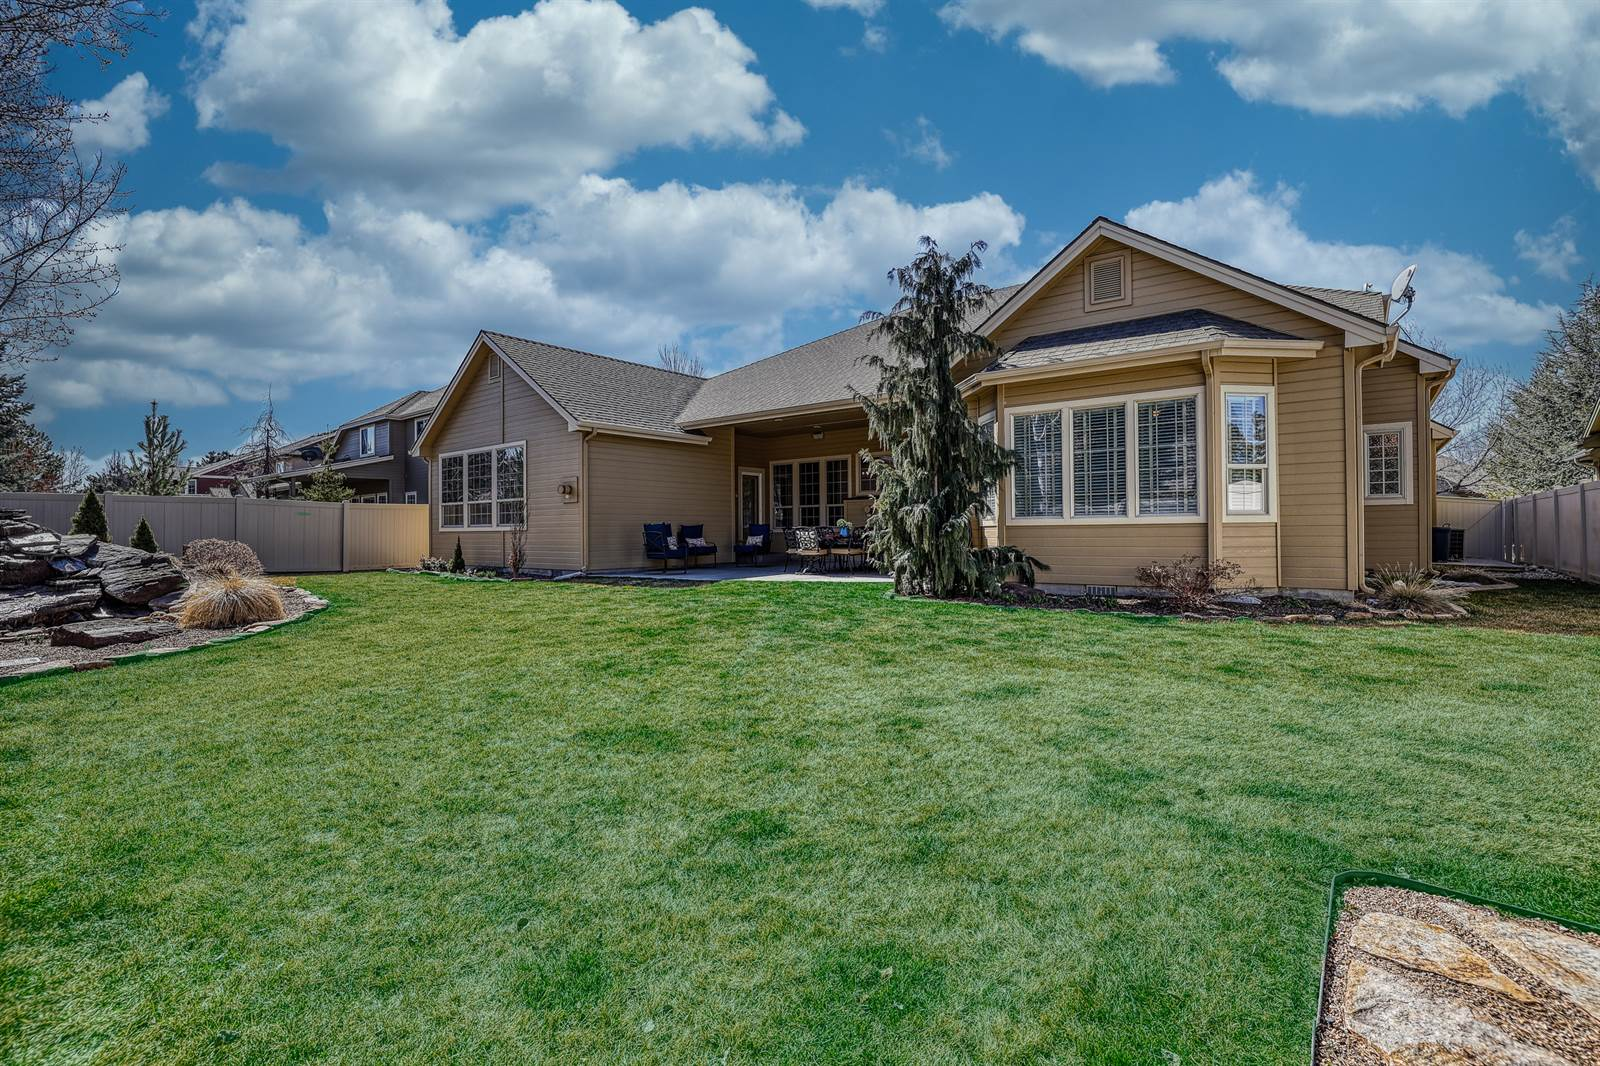 3684 S Arno Ave, Meridian, ID 83642